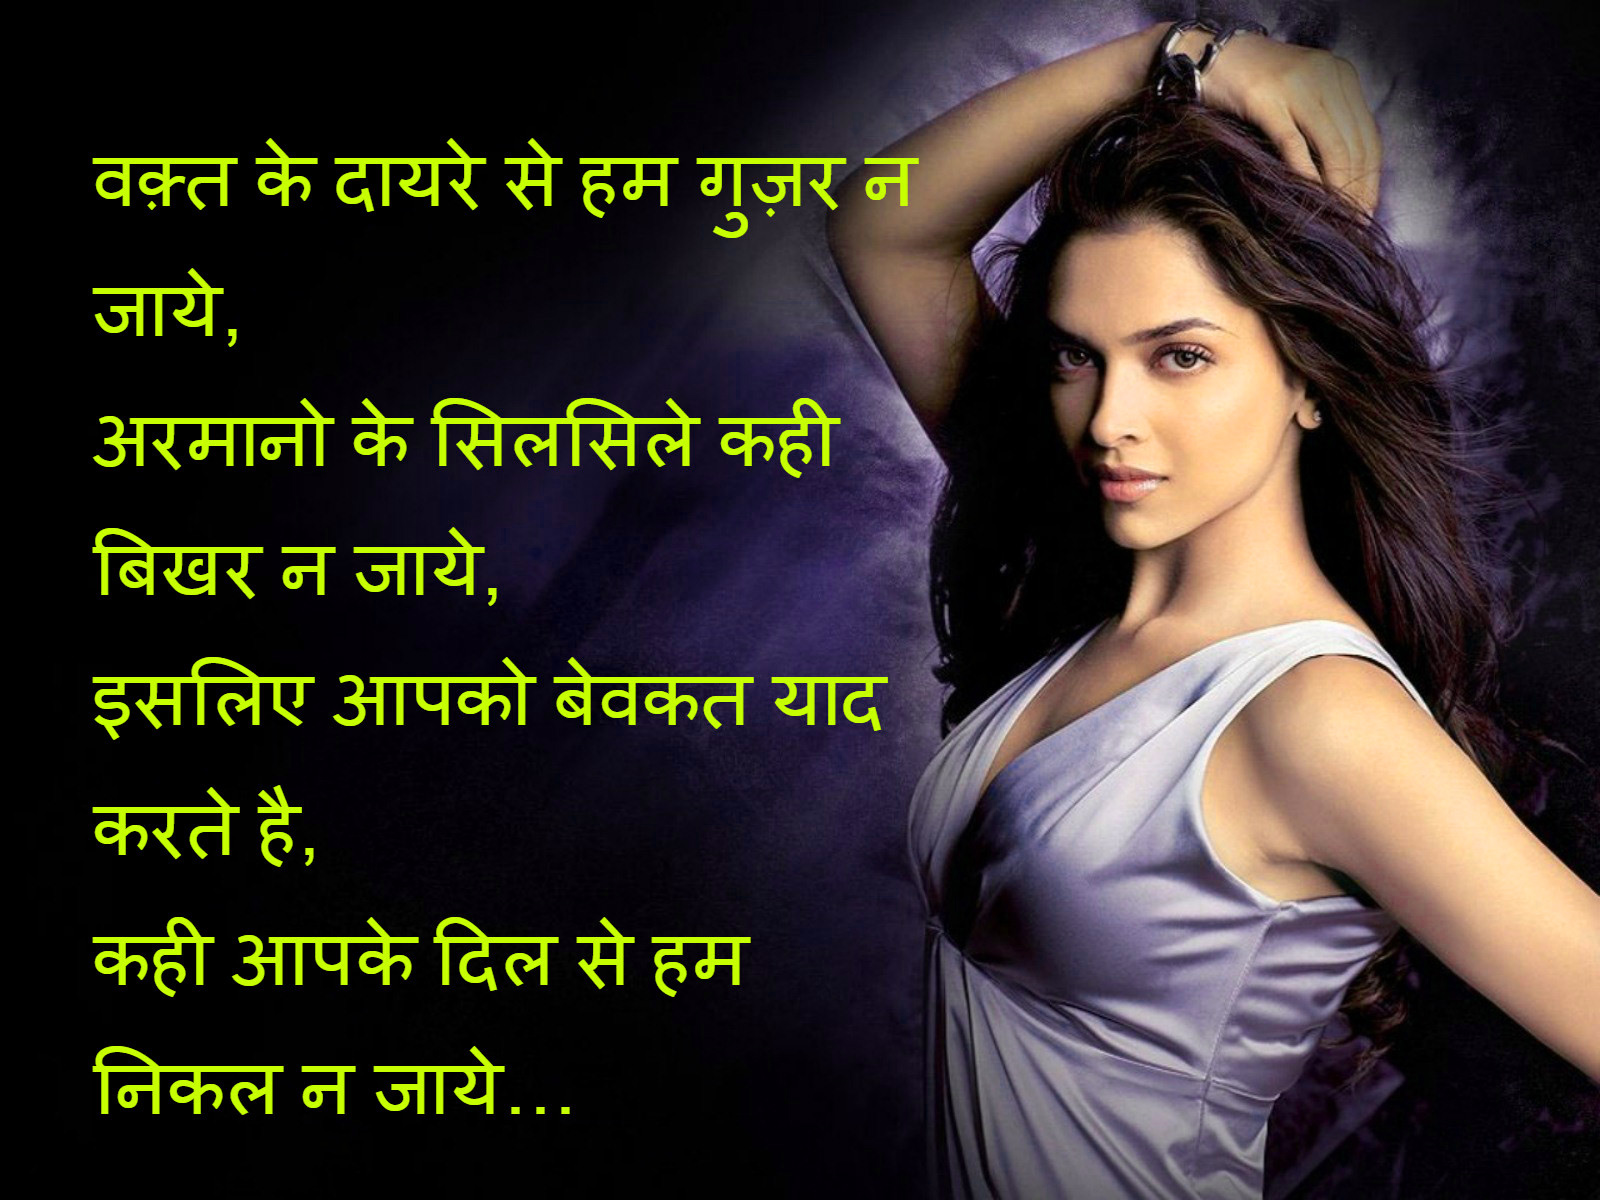 Romantic DP For Whatsapp With Hindi Images Wallpaper Pictures Download